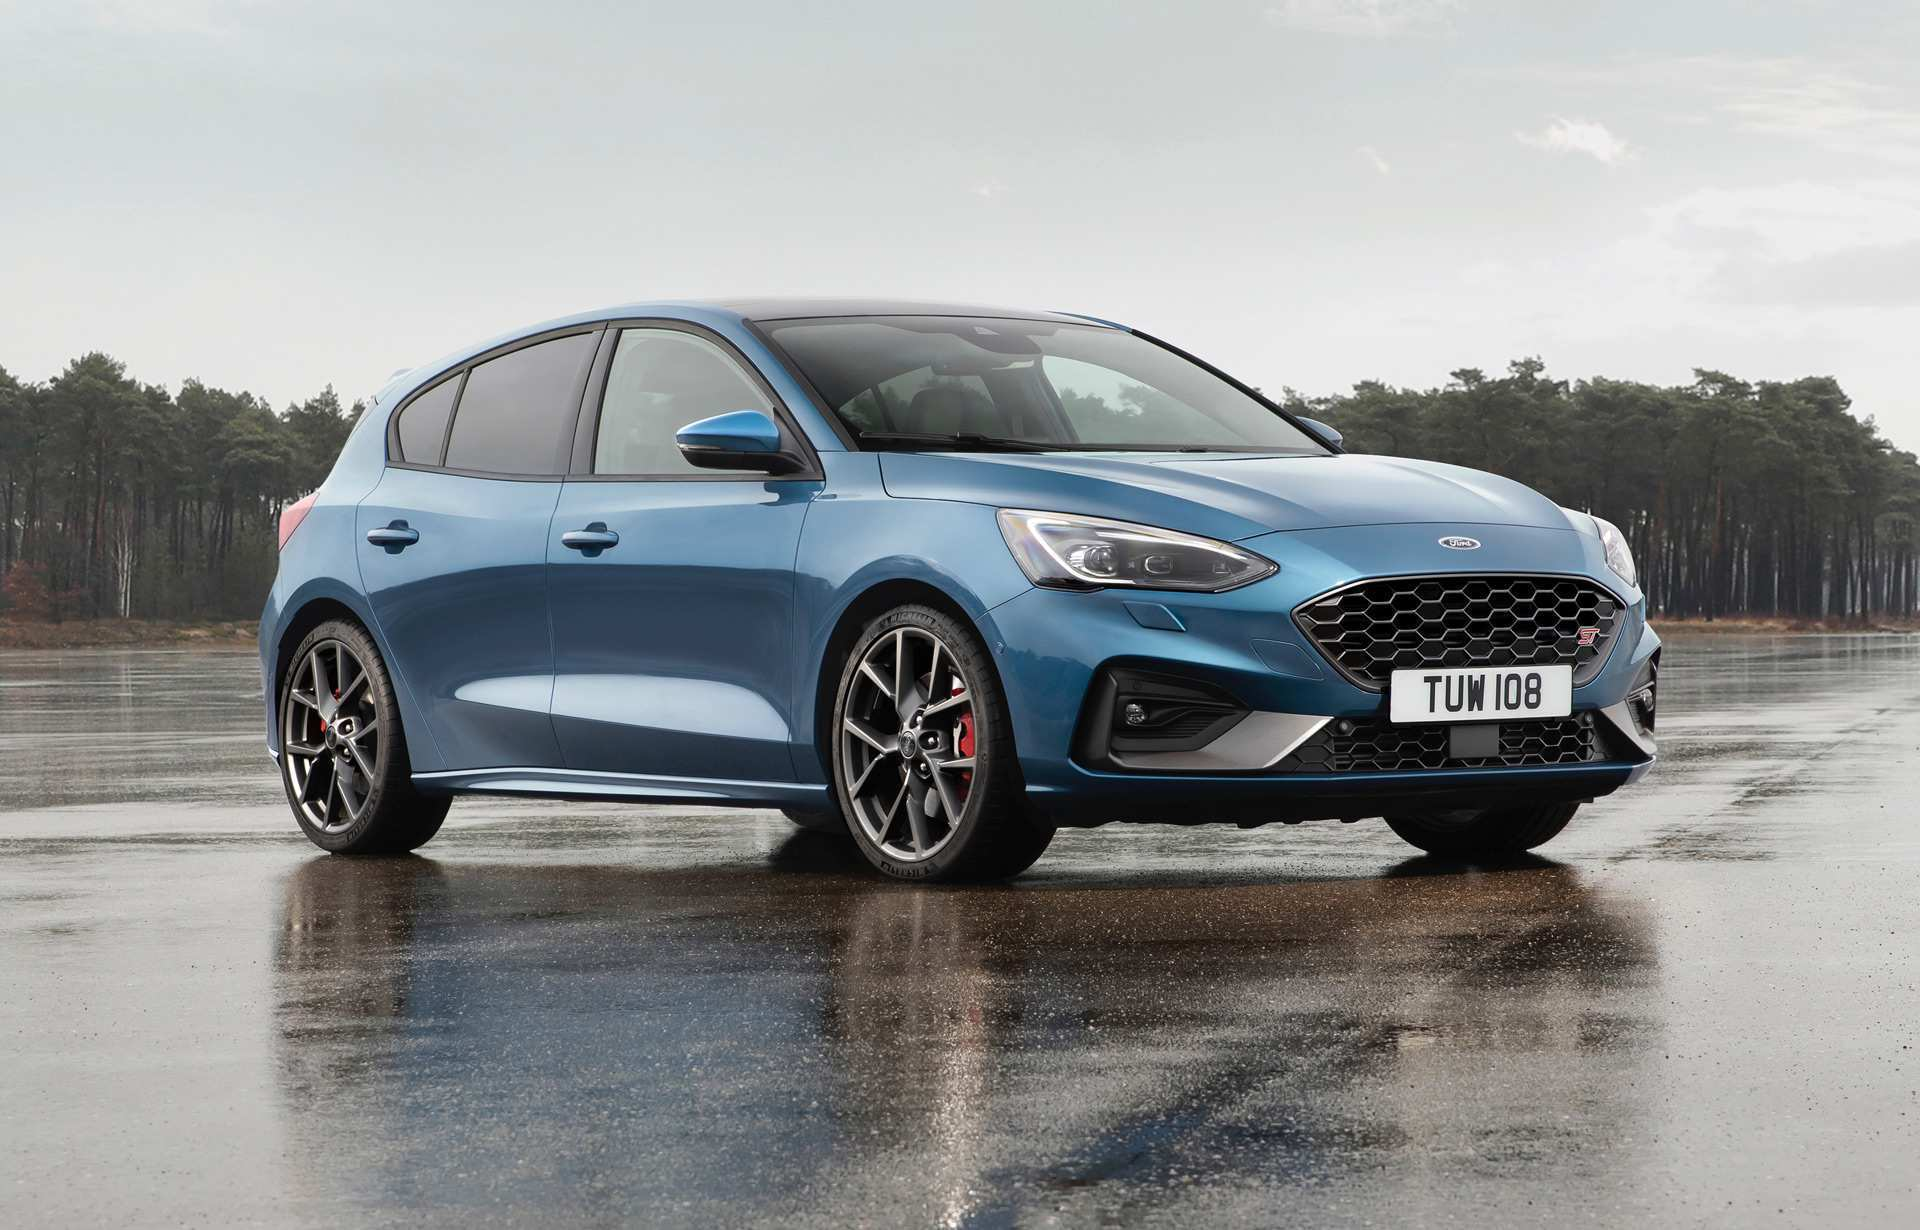 69 The Ford Focus Rs 2020 Wallpaper